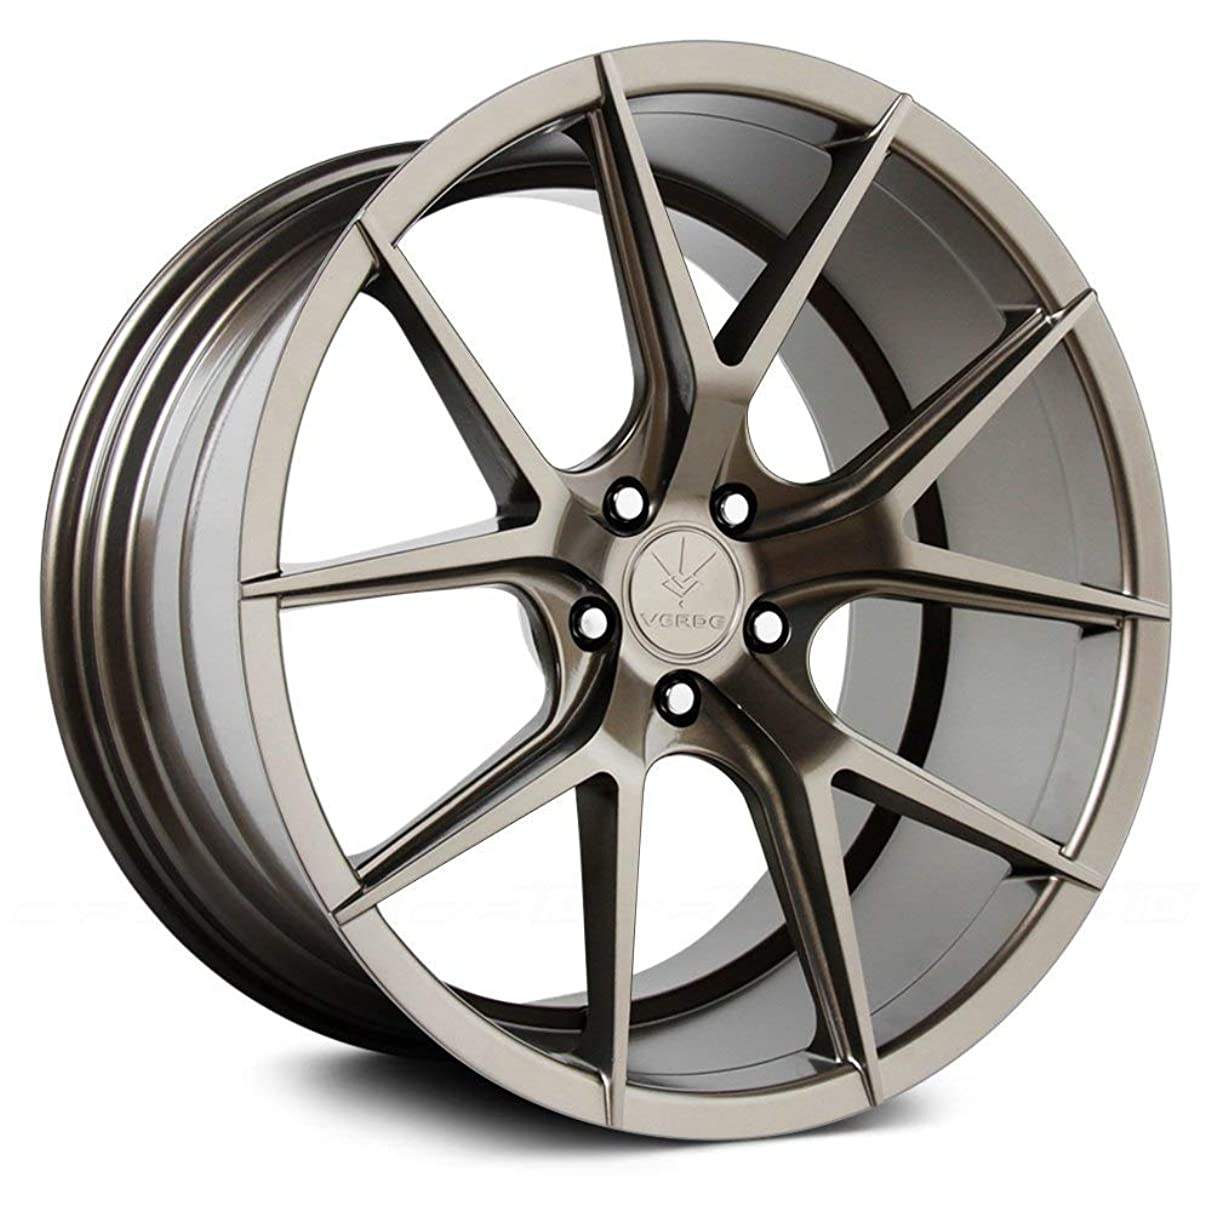 Verde Custom Wheels Axis Gloss Bronze Wheel with Painted Finish (22 x 9. inches /5 x 120 mm, 20 mm Offset)